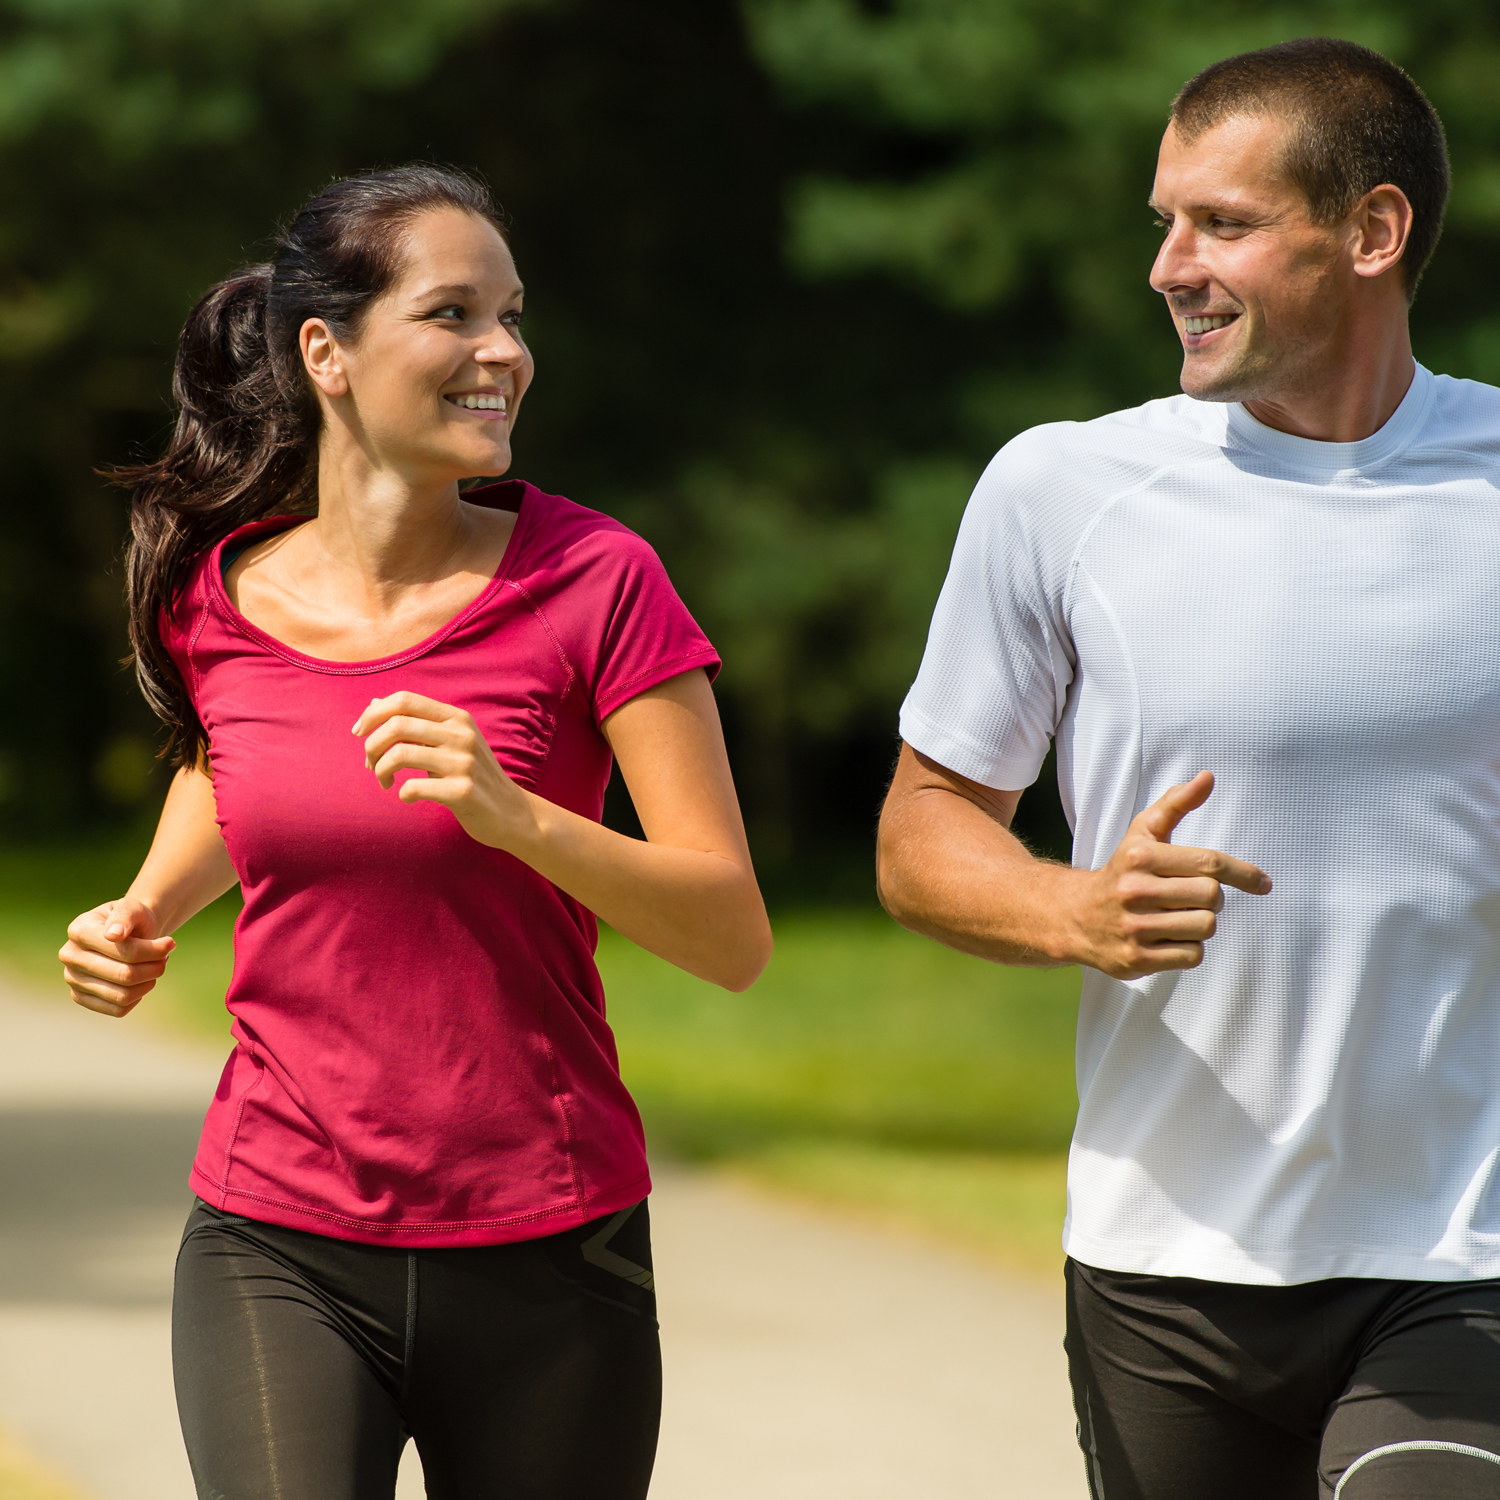 Couple jogging down wooded trail, smiling at each other